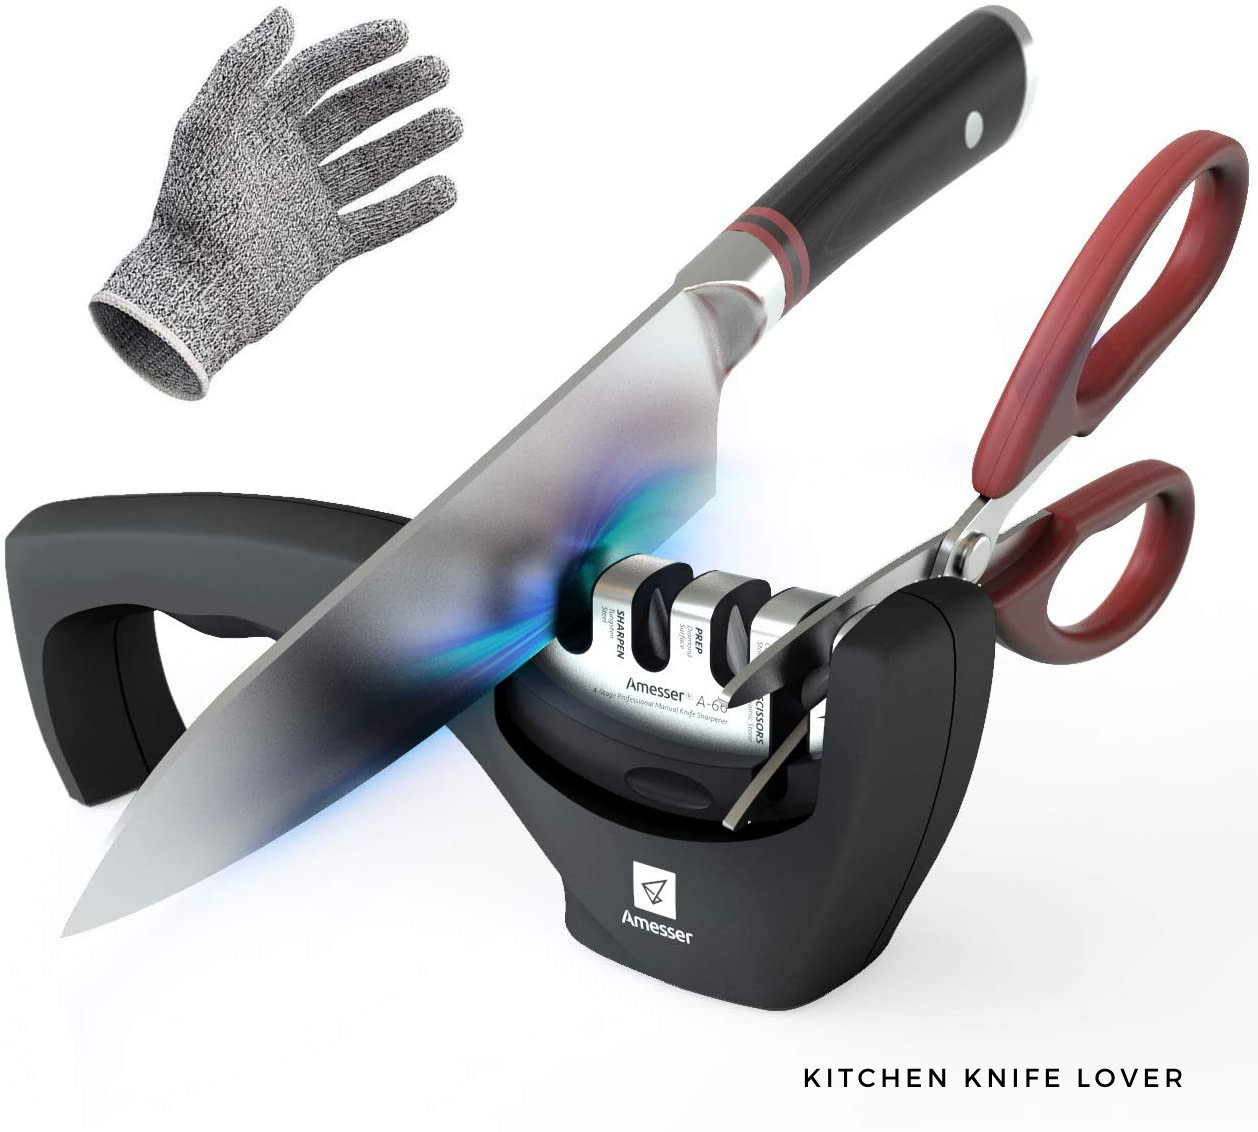 Do you Know How to sharpen a kitchen knife properly